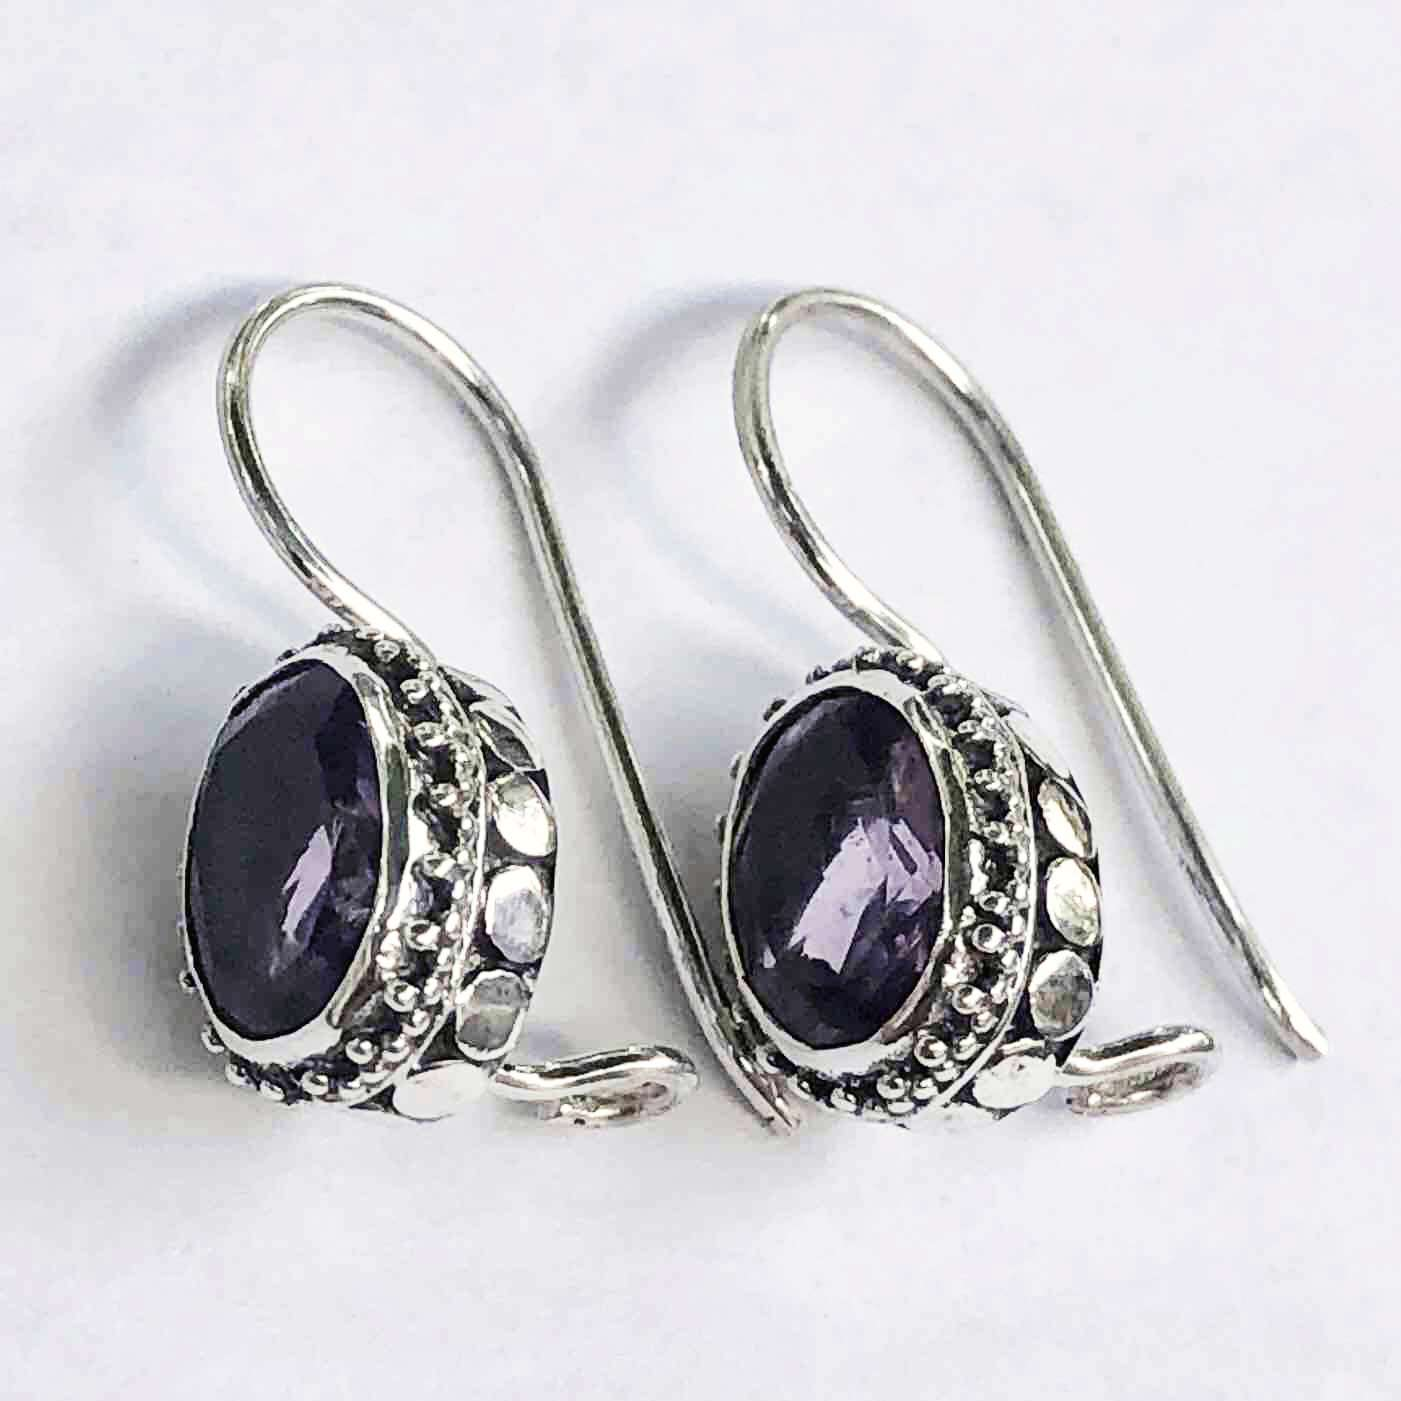 (UNIQUE 925 BALI SILVER DOT EARRINGS WITH AMETHYST)